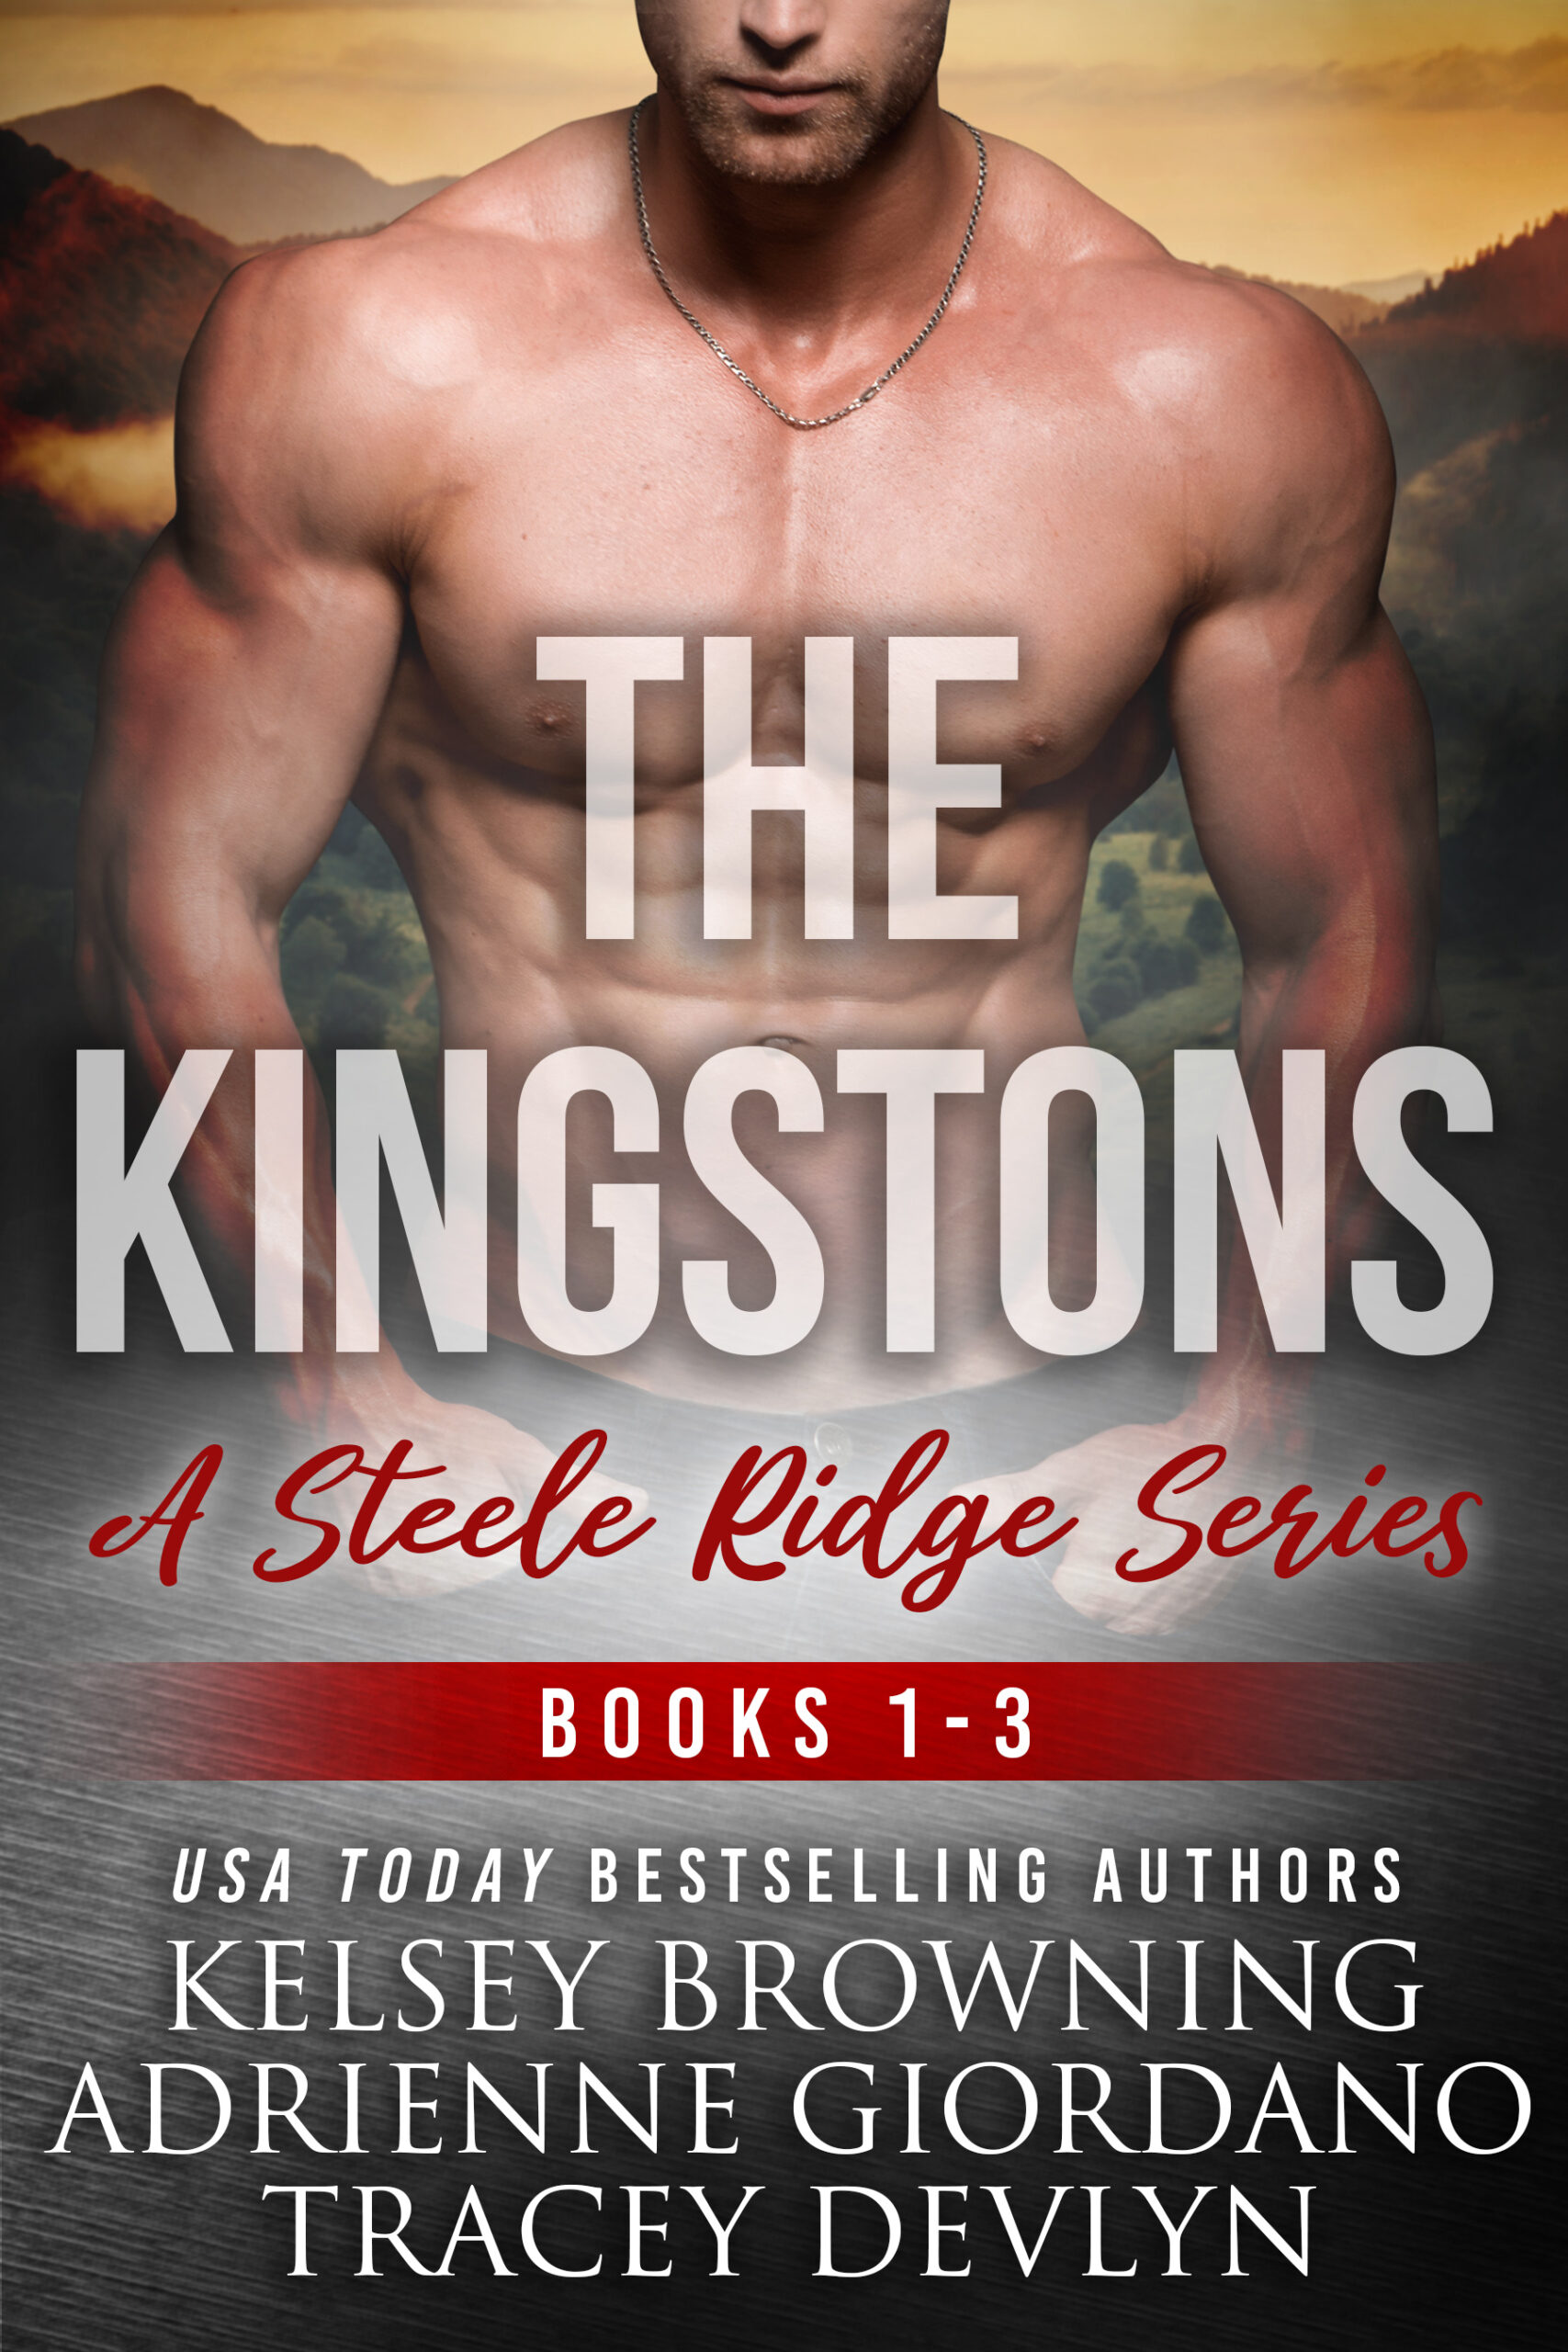 The Kingstons a Steele `Ridge Series box set 1